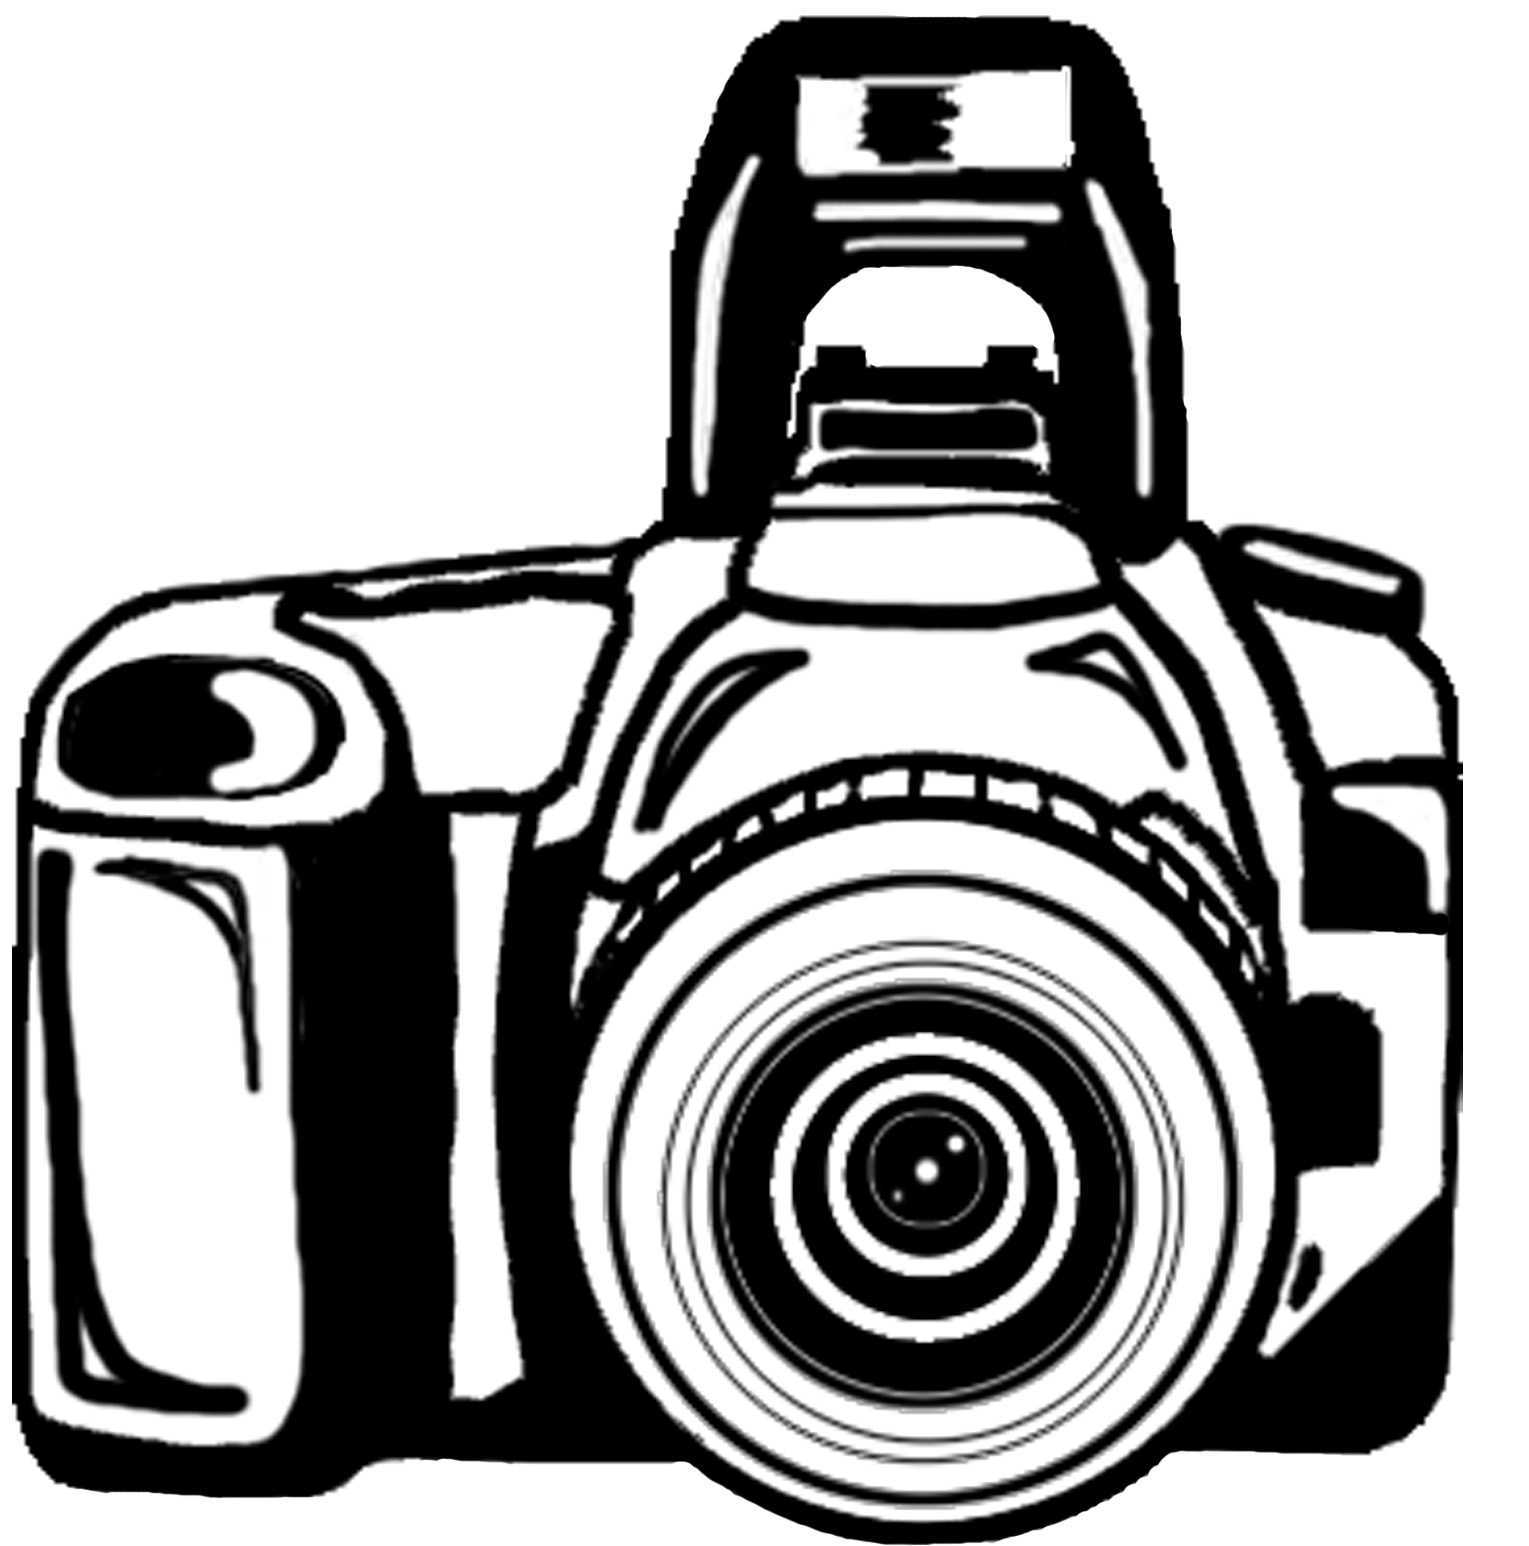 1529x1546 Coolest Vintage Camera Clip Art Black And White 99 Ideas